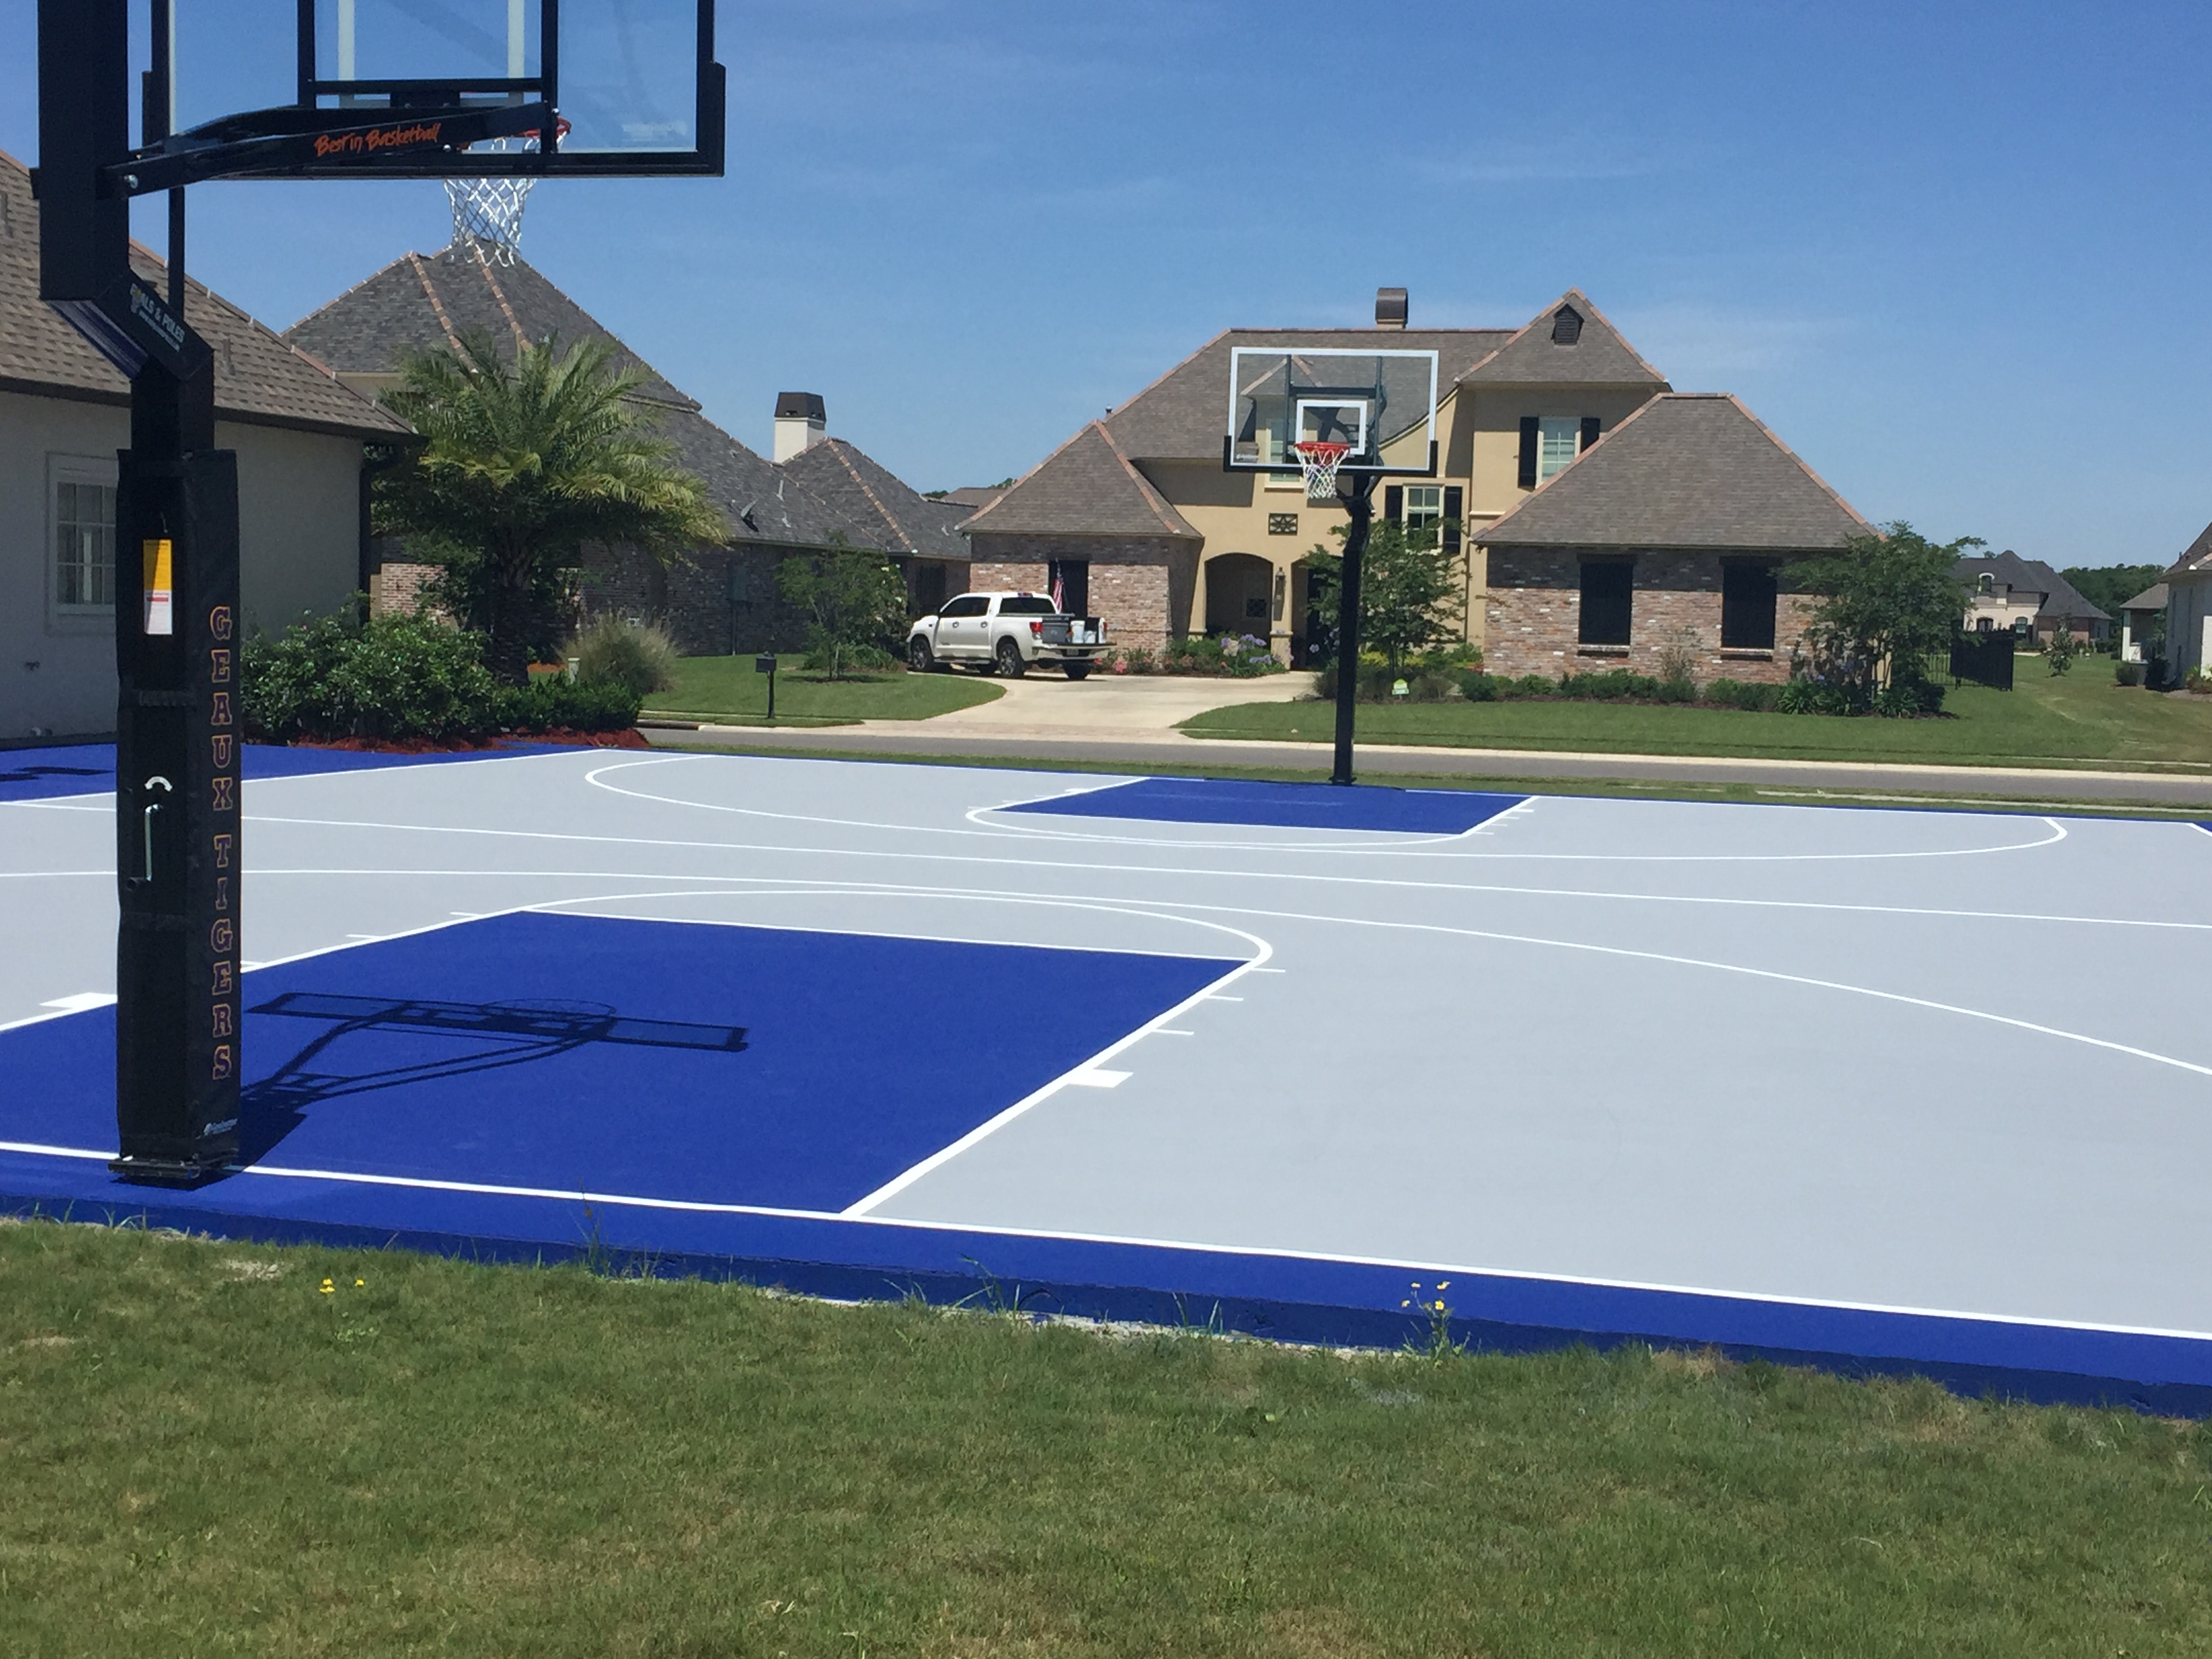 Full size basketball court with acrylic surfacing in bright blue and grey